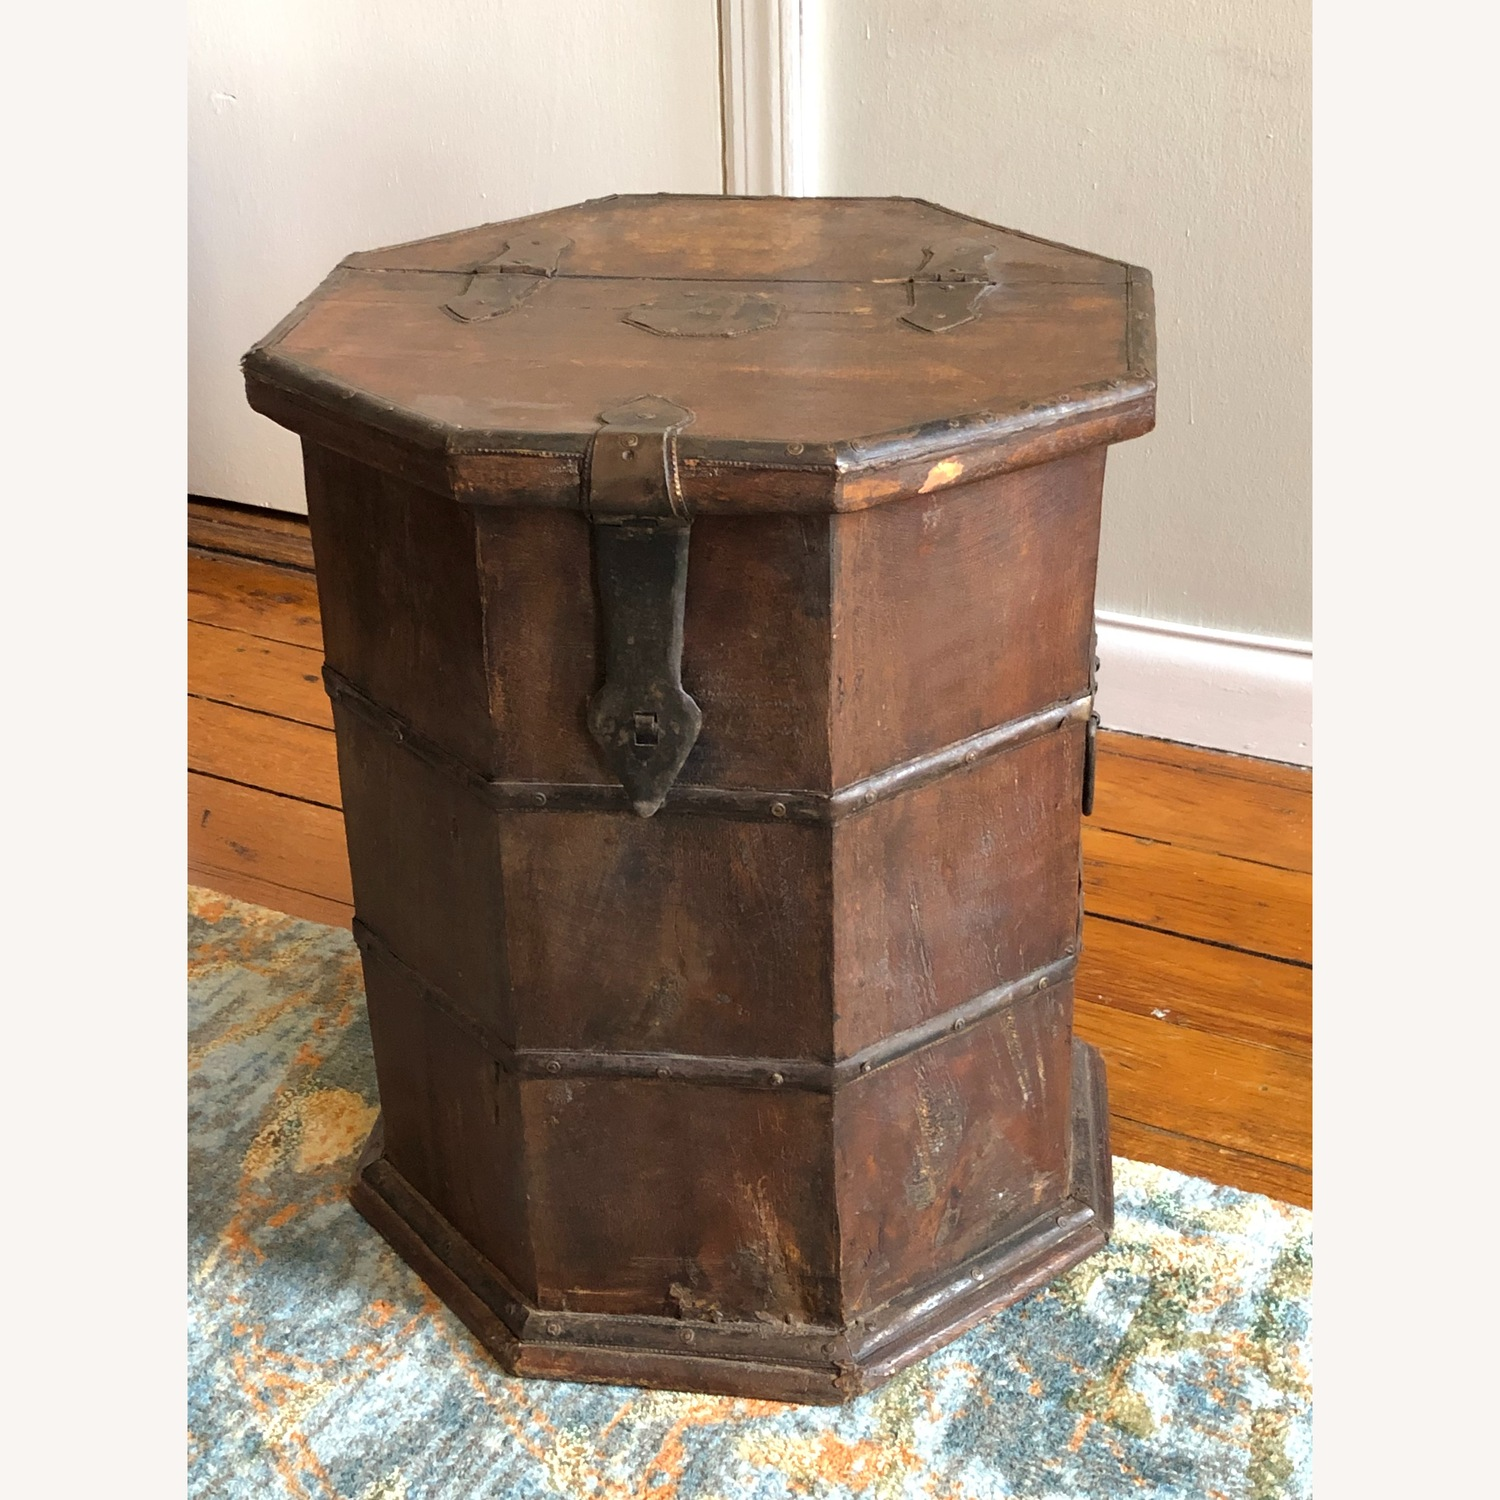 Vintage Octagonal Side Table Trunk with Storage - image-1